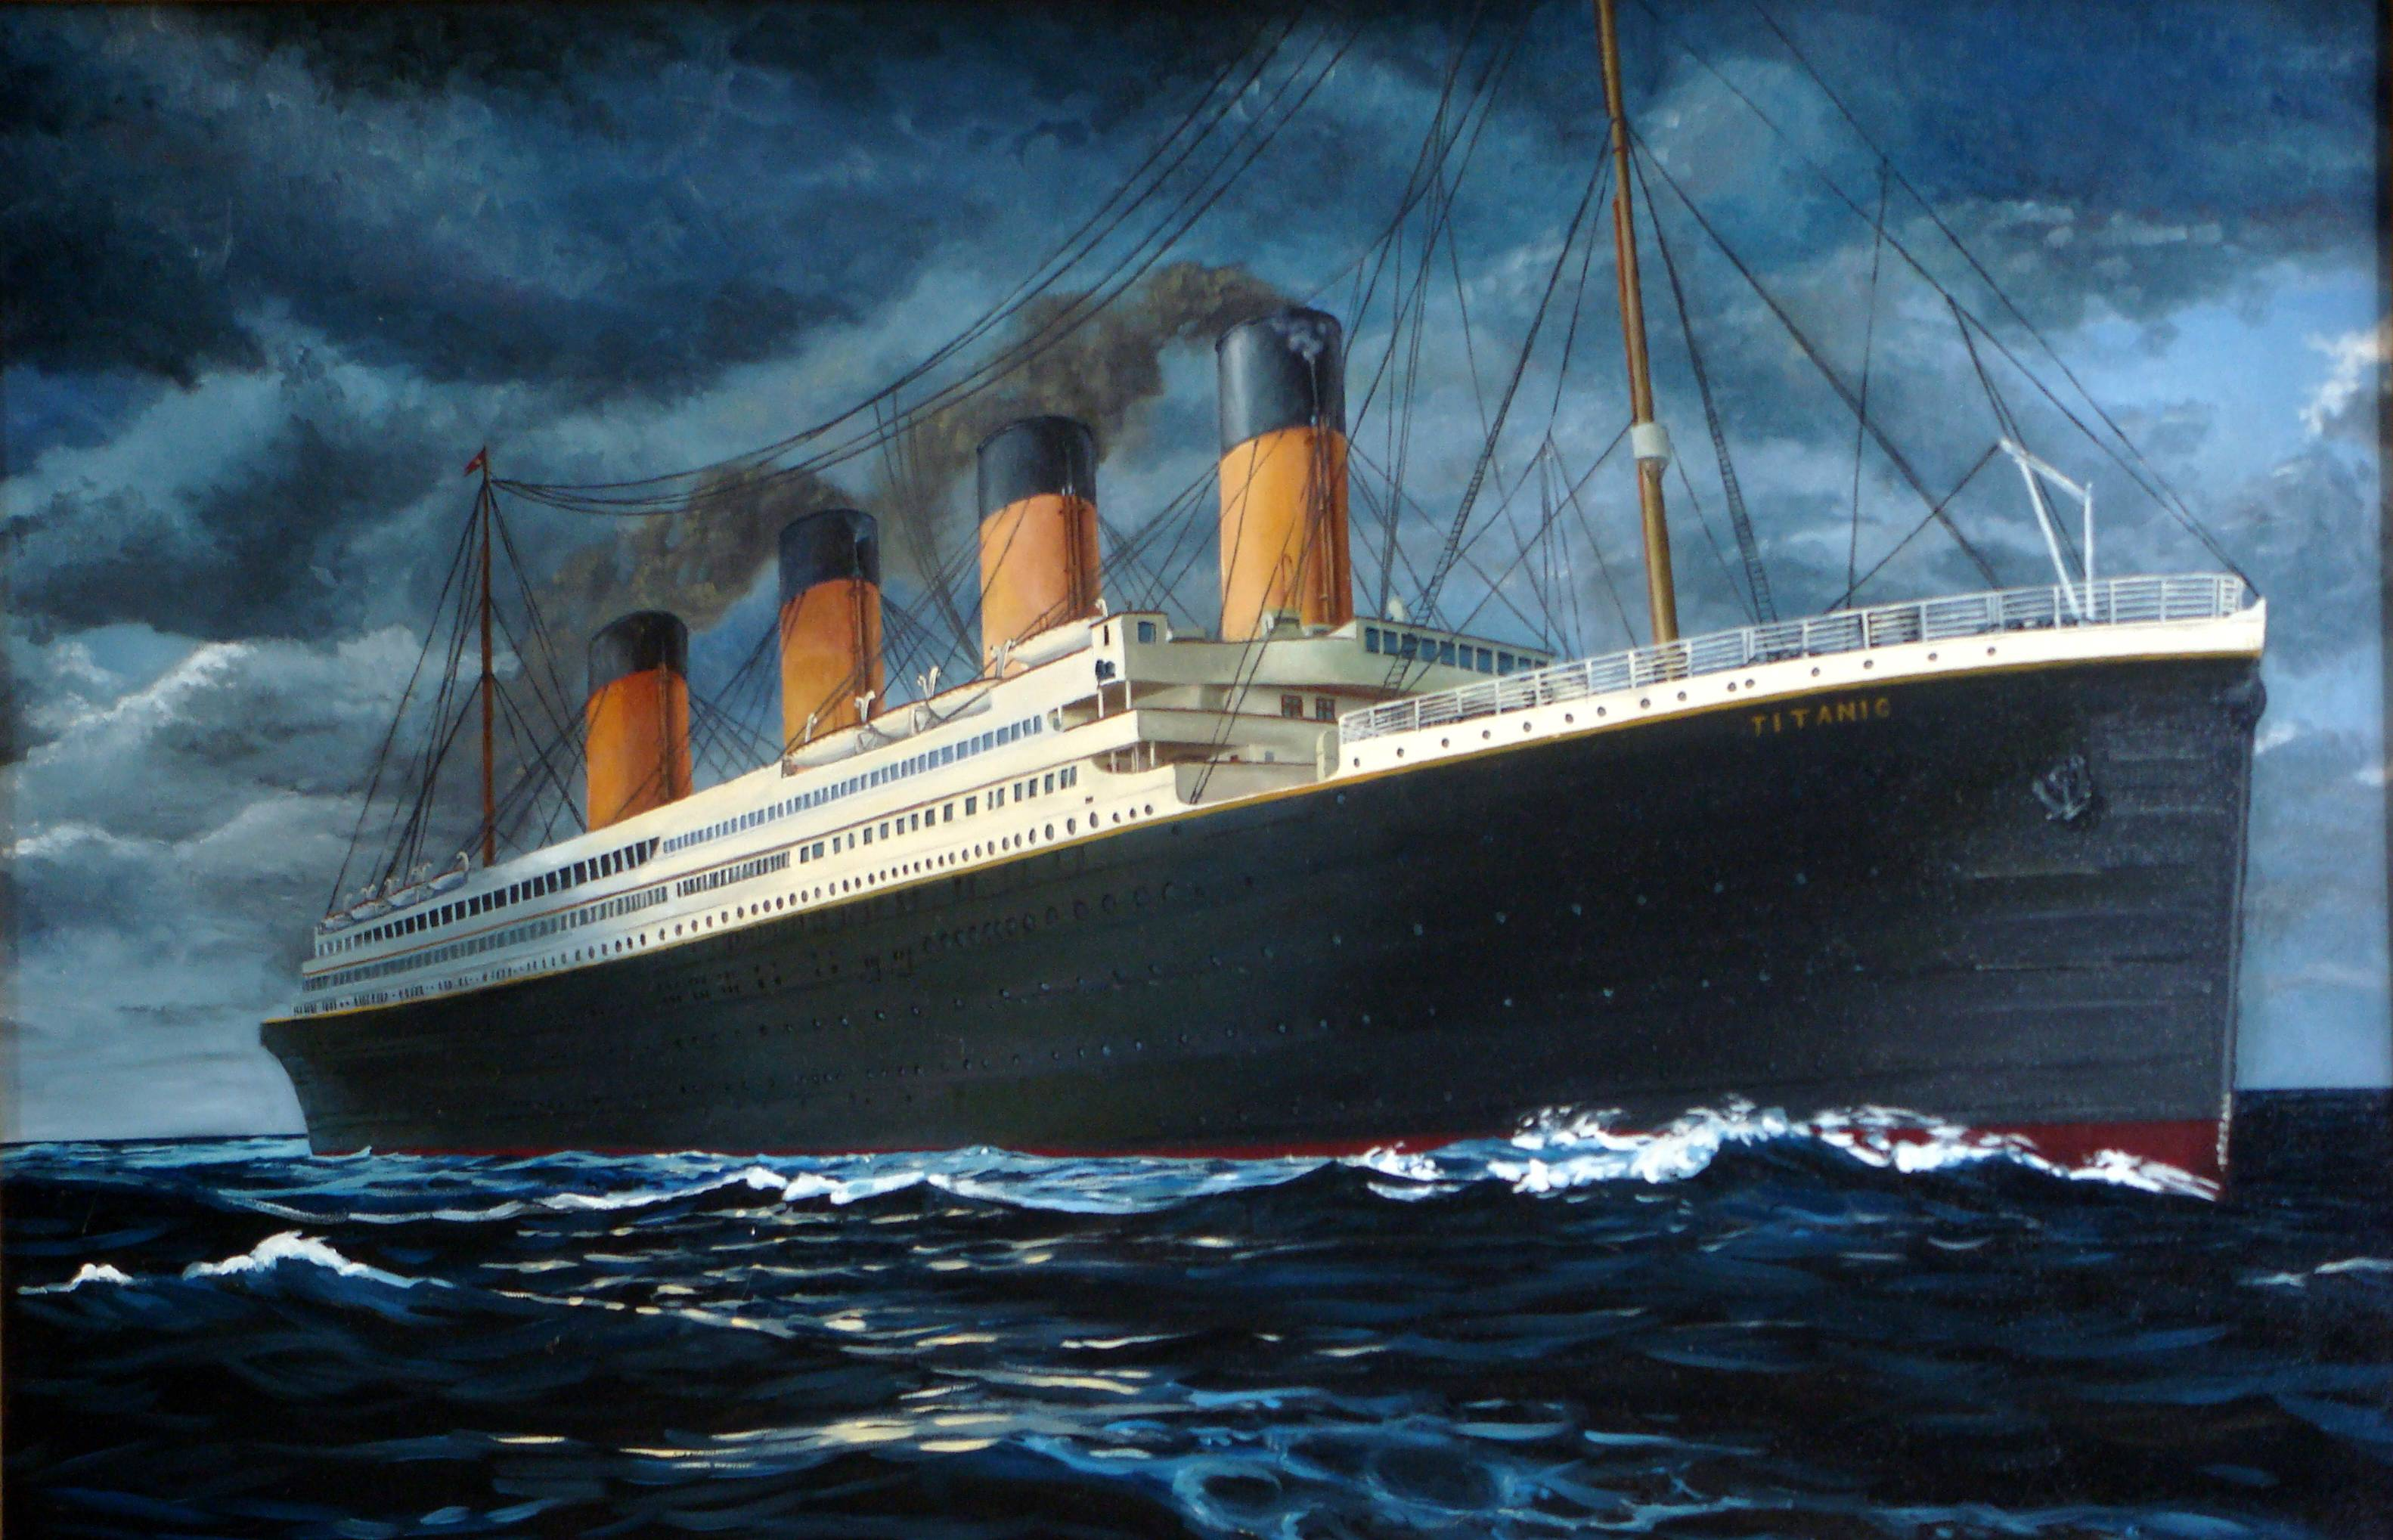 Titanic Movies Wallpaper Background